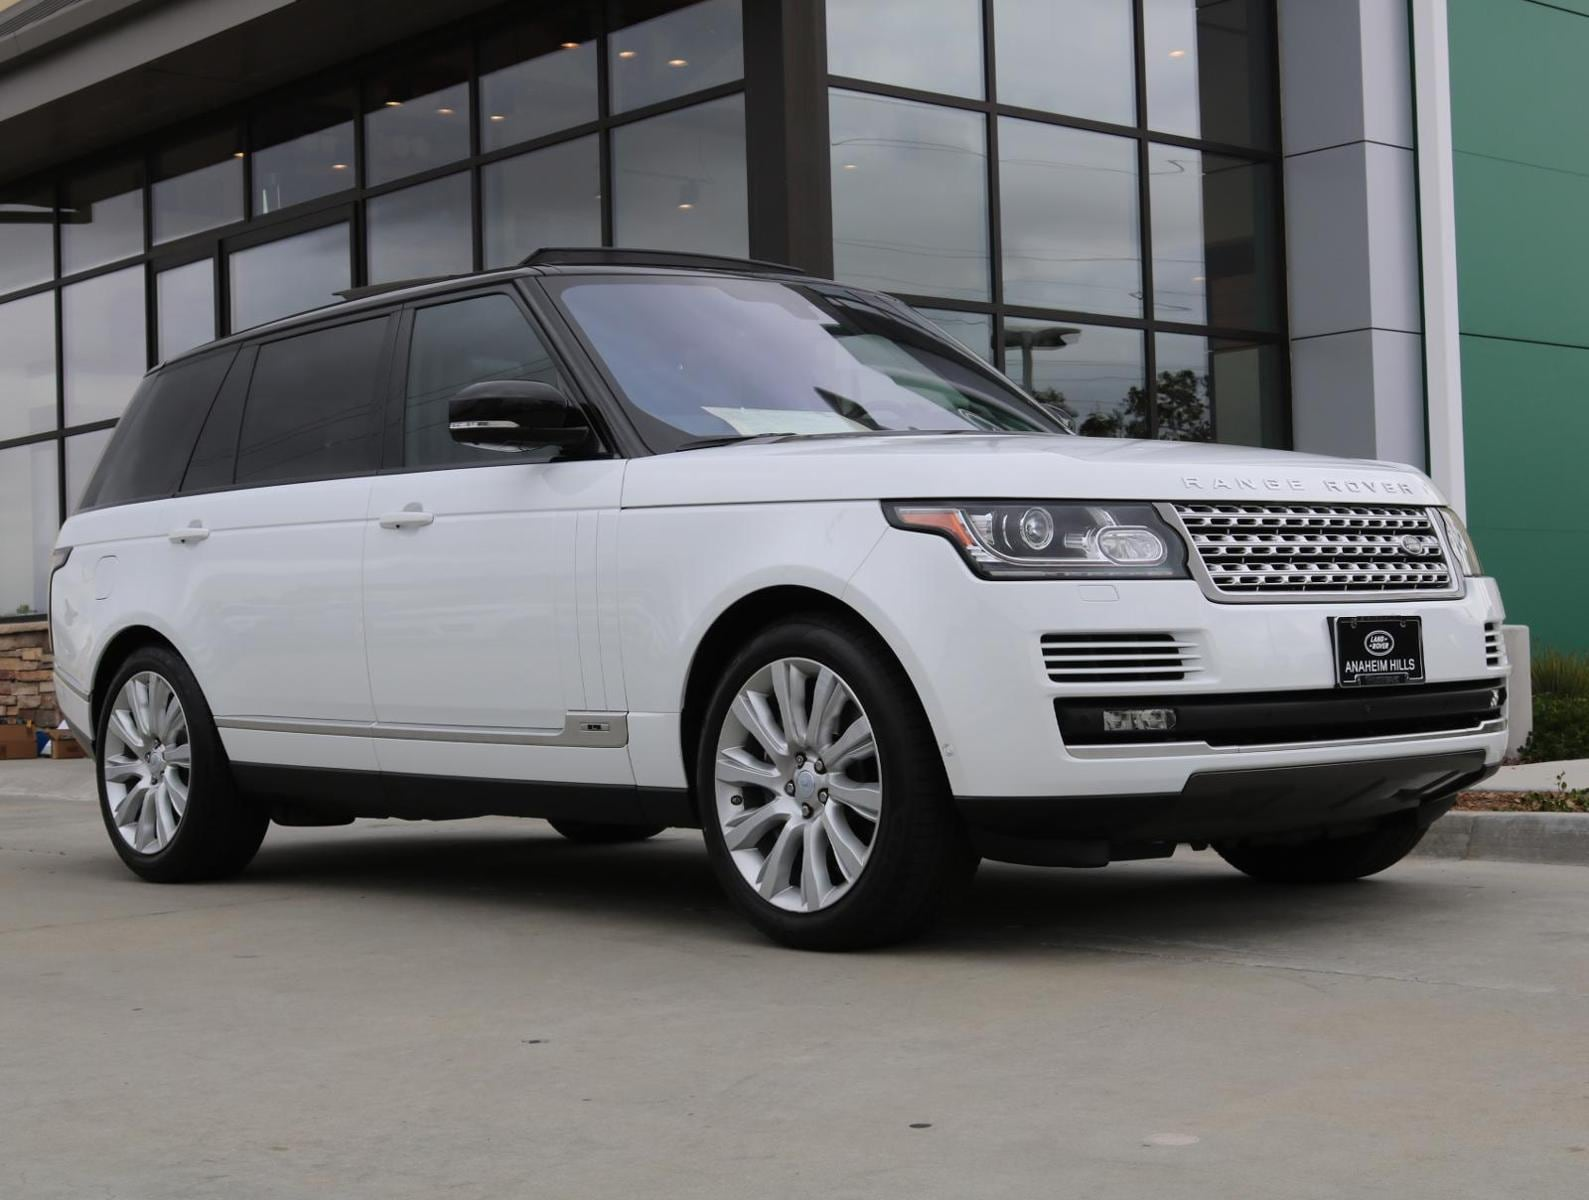 2016 Land Rover Range Rover Supercharged SUV Orange County California